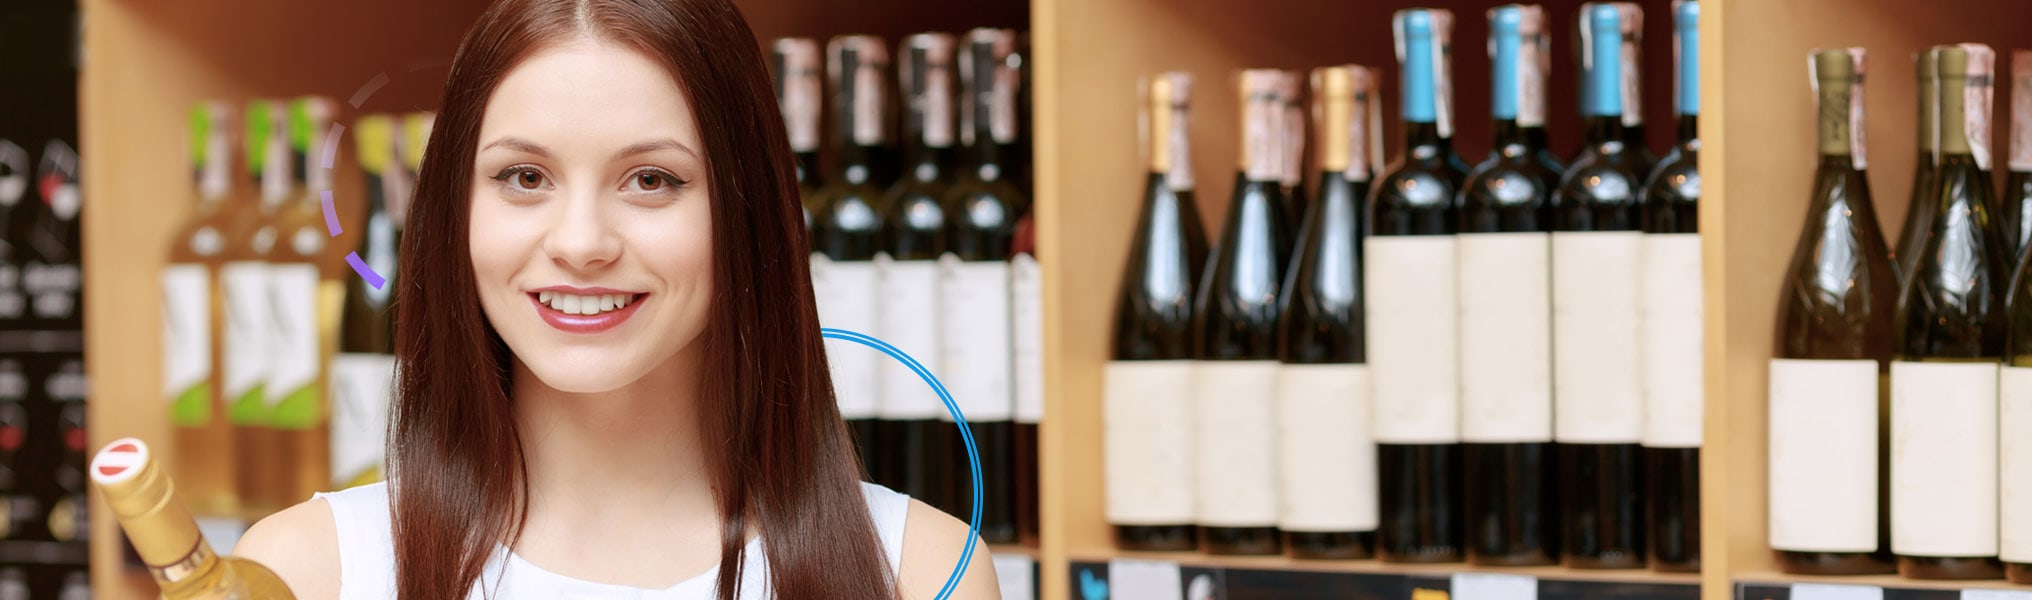 Woman at wine store with wine bottles in background